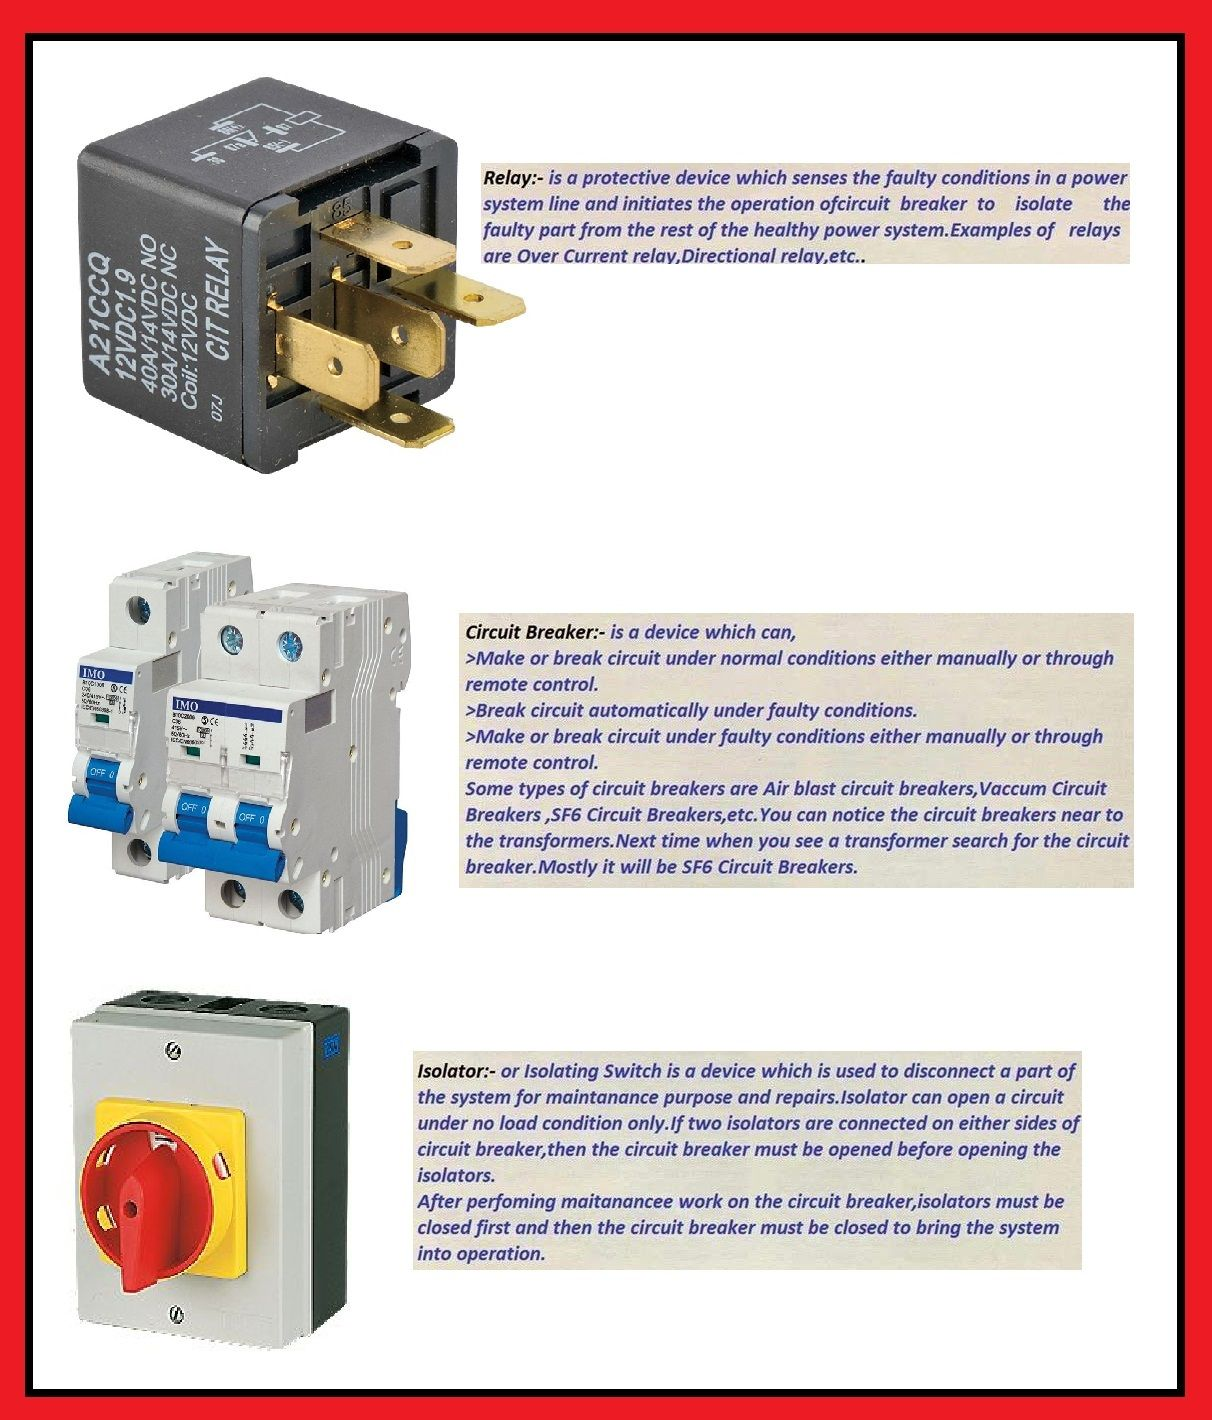 hight resolution of what is the difference between relay circuit breaker and isolator elec eng world